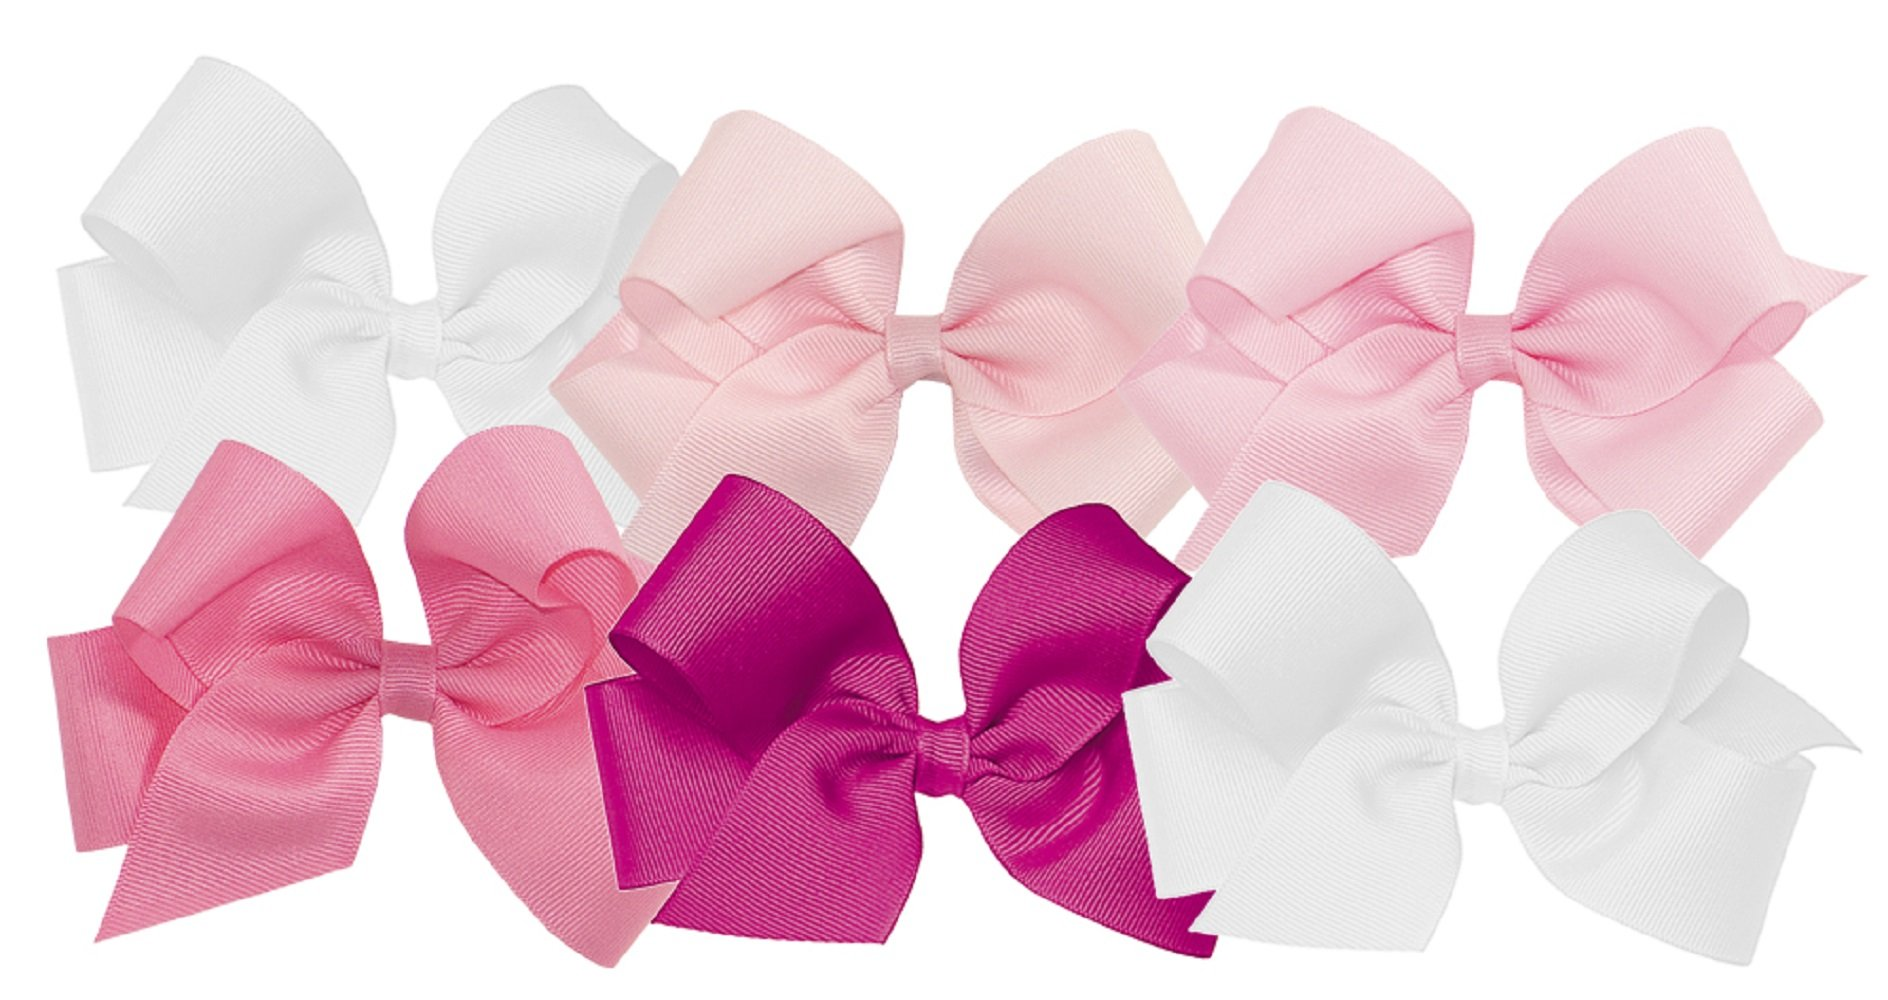 Wee Ones Girls' Medium Bow 6 pc Set Solid Grosgrain Variety Pack on a WeeStay Clip - White, Light Pink, Pearl, Hot Pink, Shocking Pink,One Size by Wee Ones